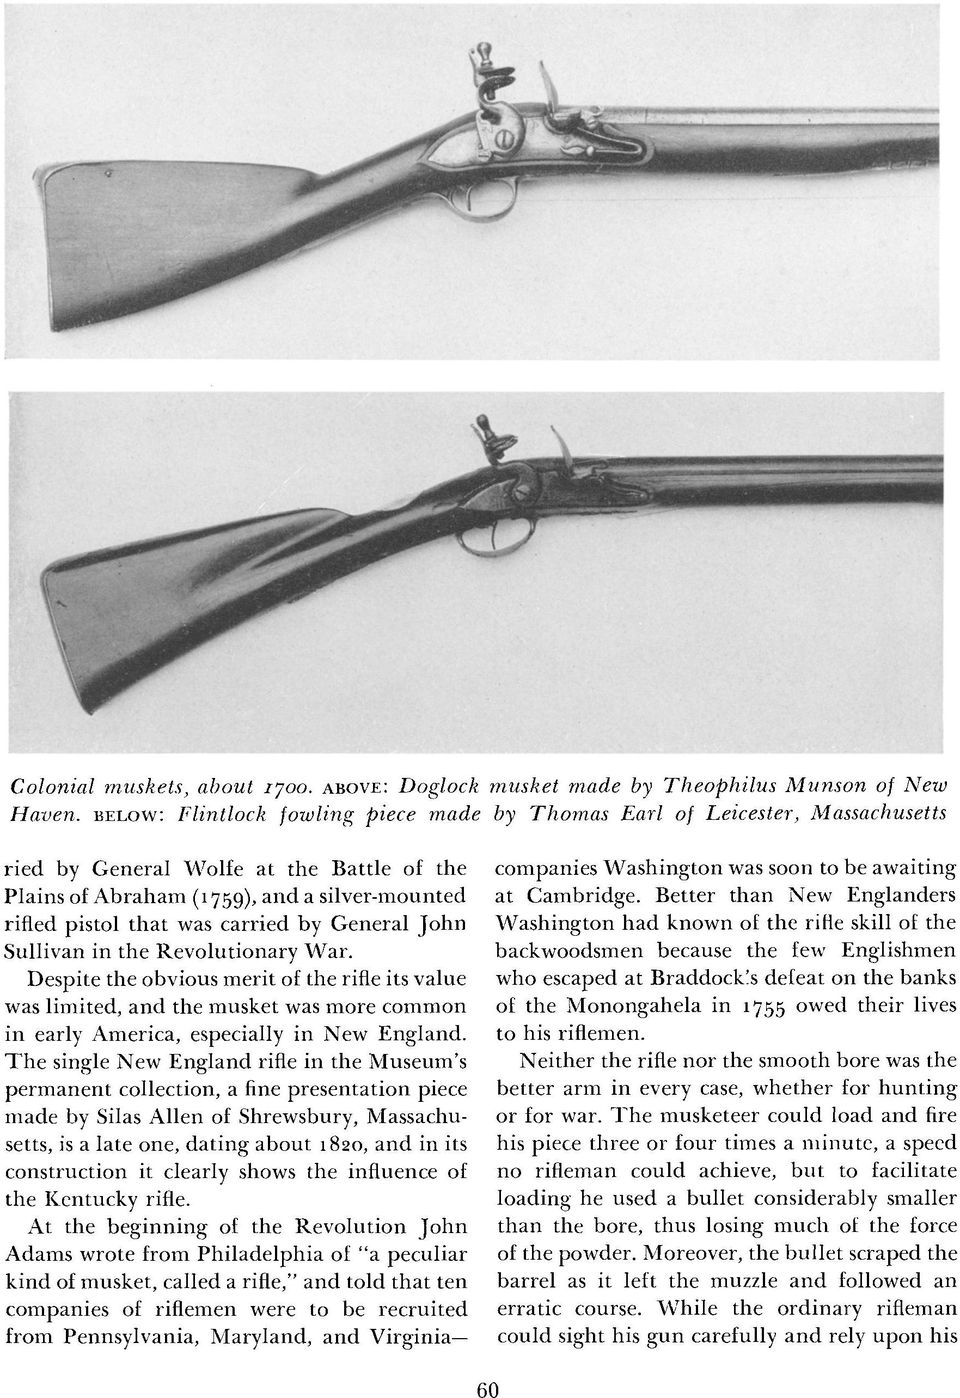 THE CRAFT OF THE EARLY AMERICAN GUNSMITH - PDF